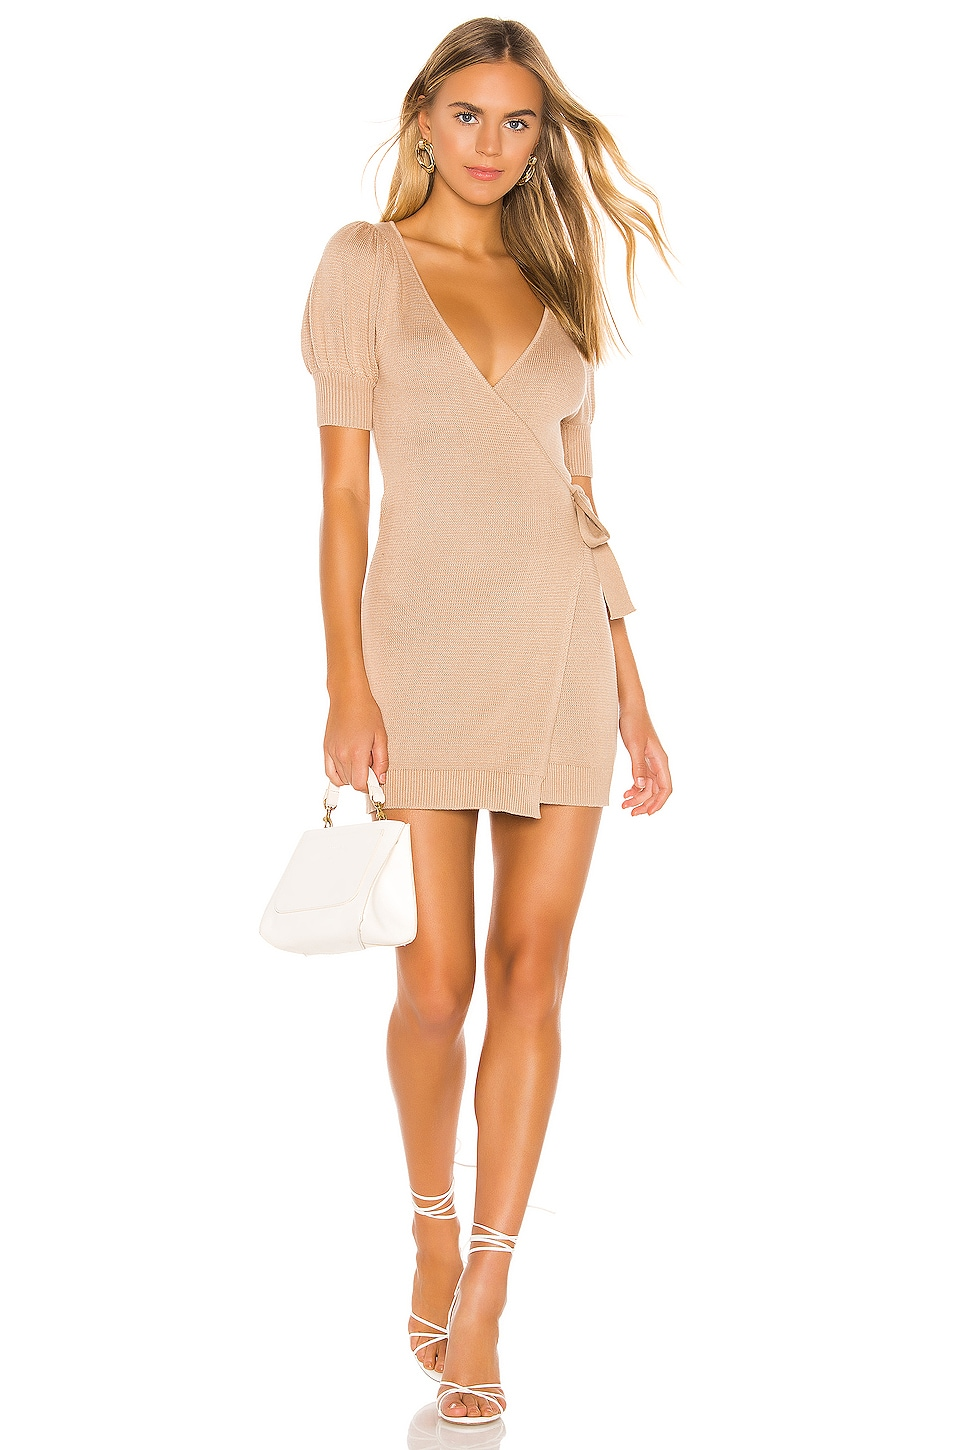 MAJORELLE Becky Wrap Dress in Neutral